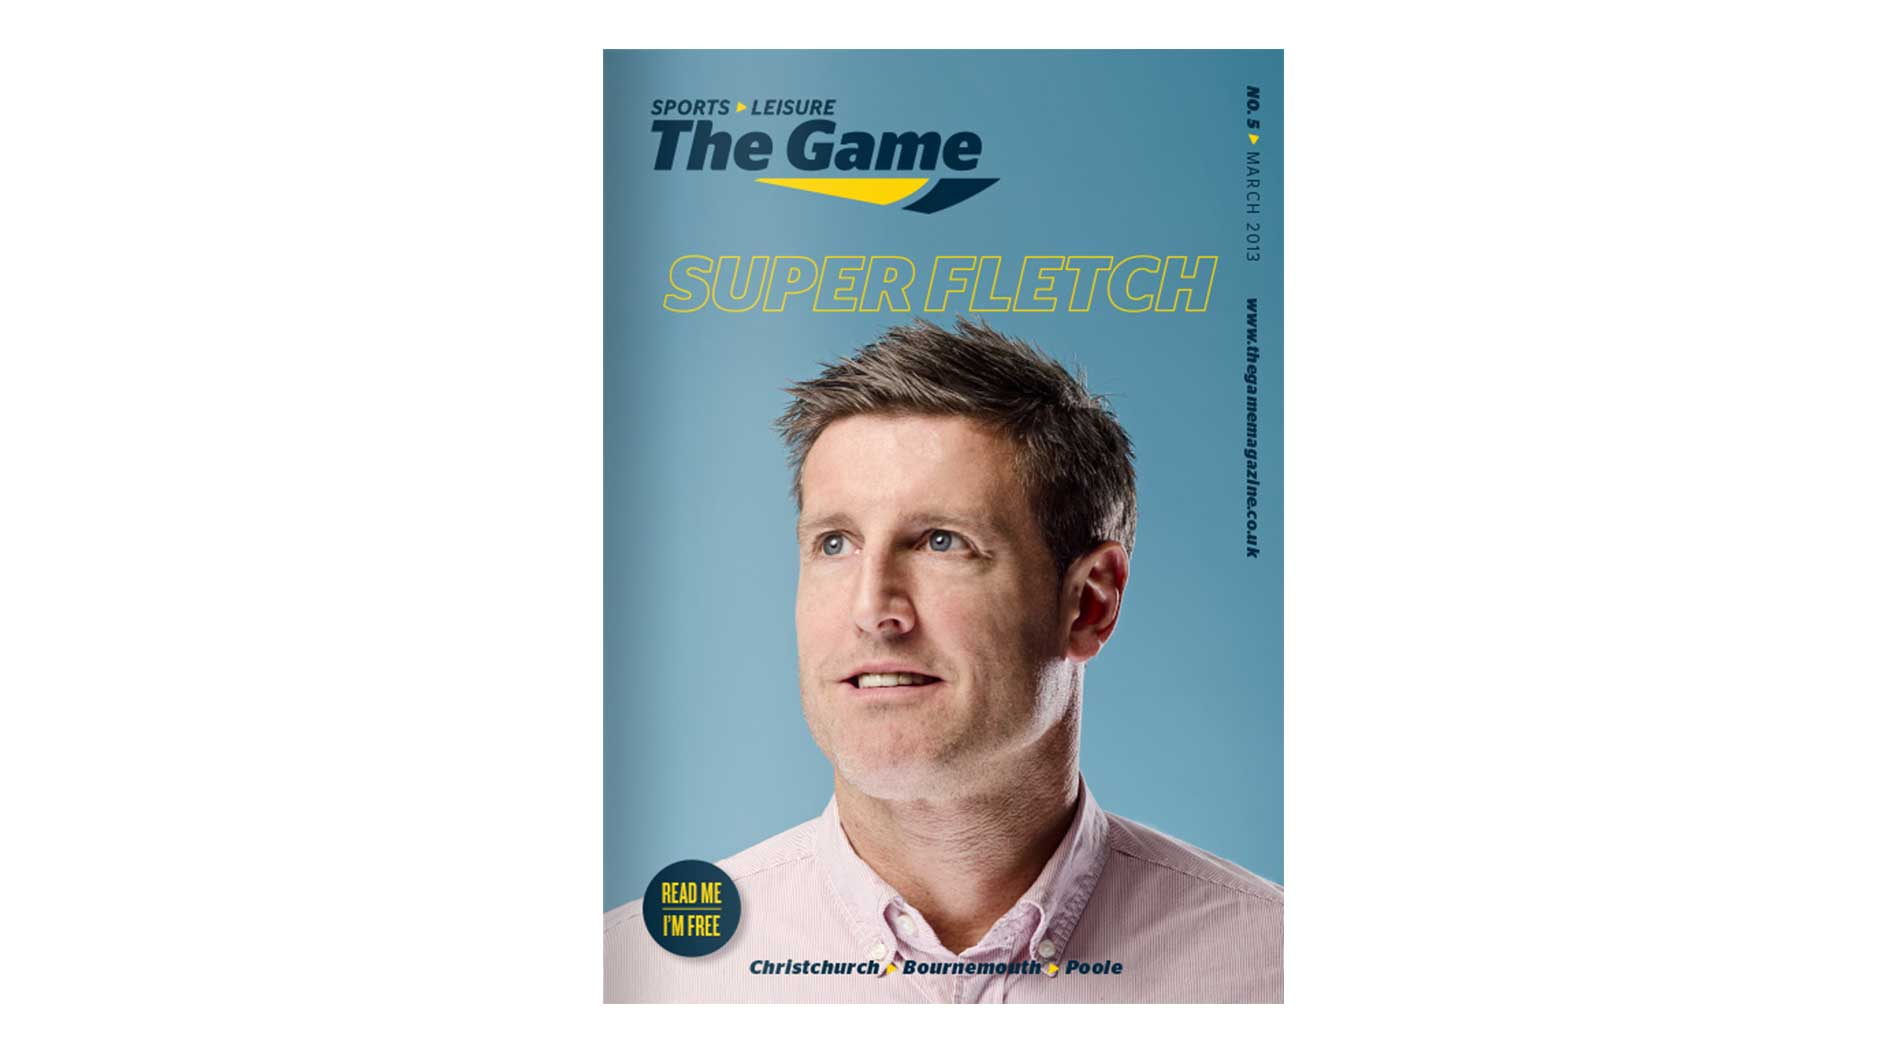 Game Magazine March 2013 front cover